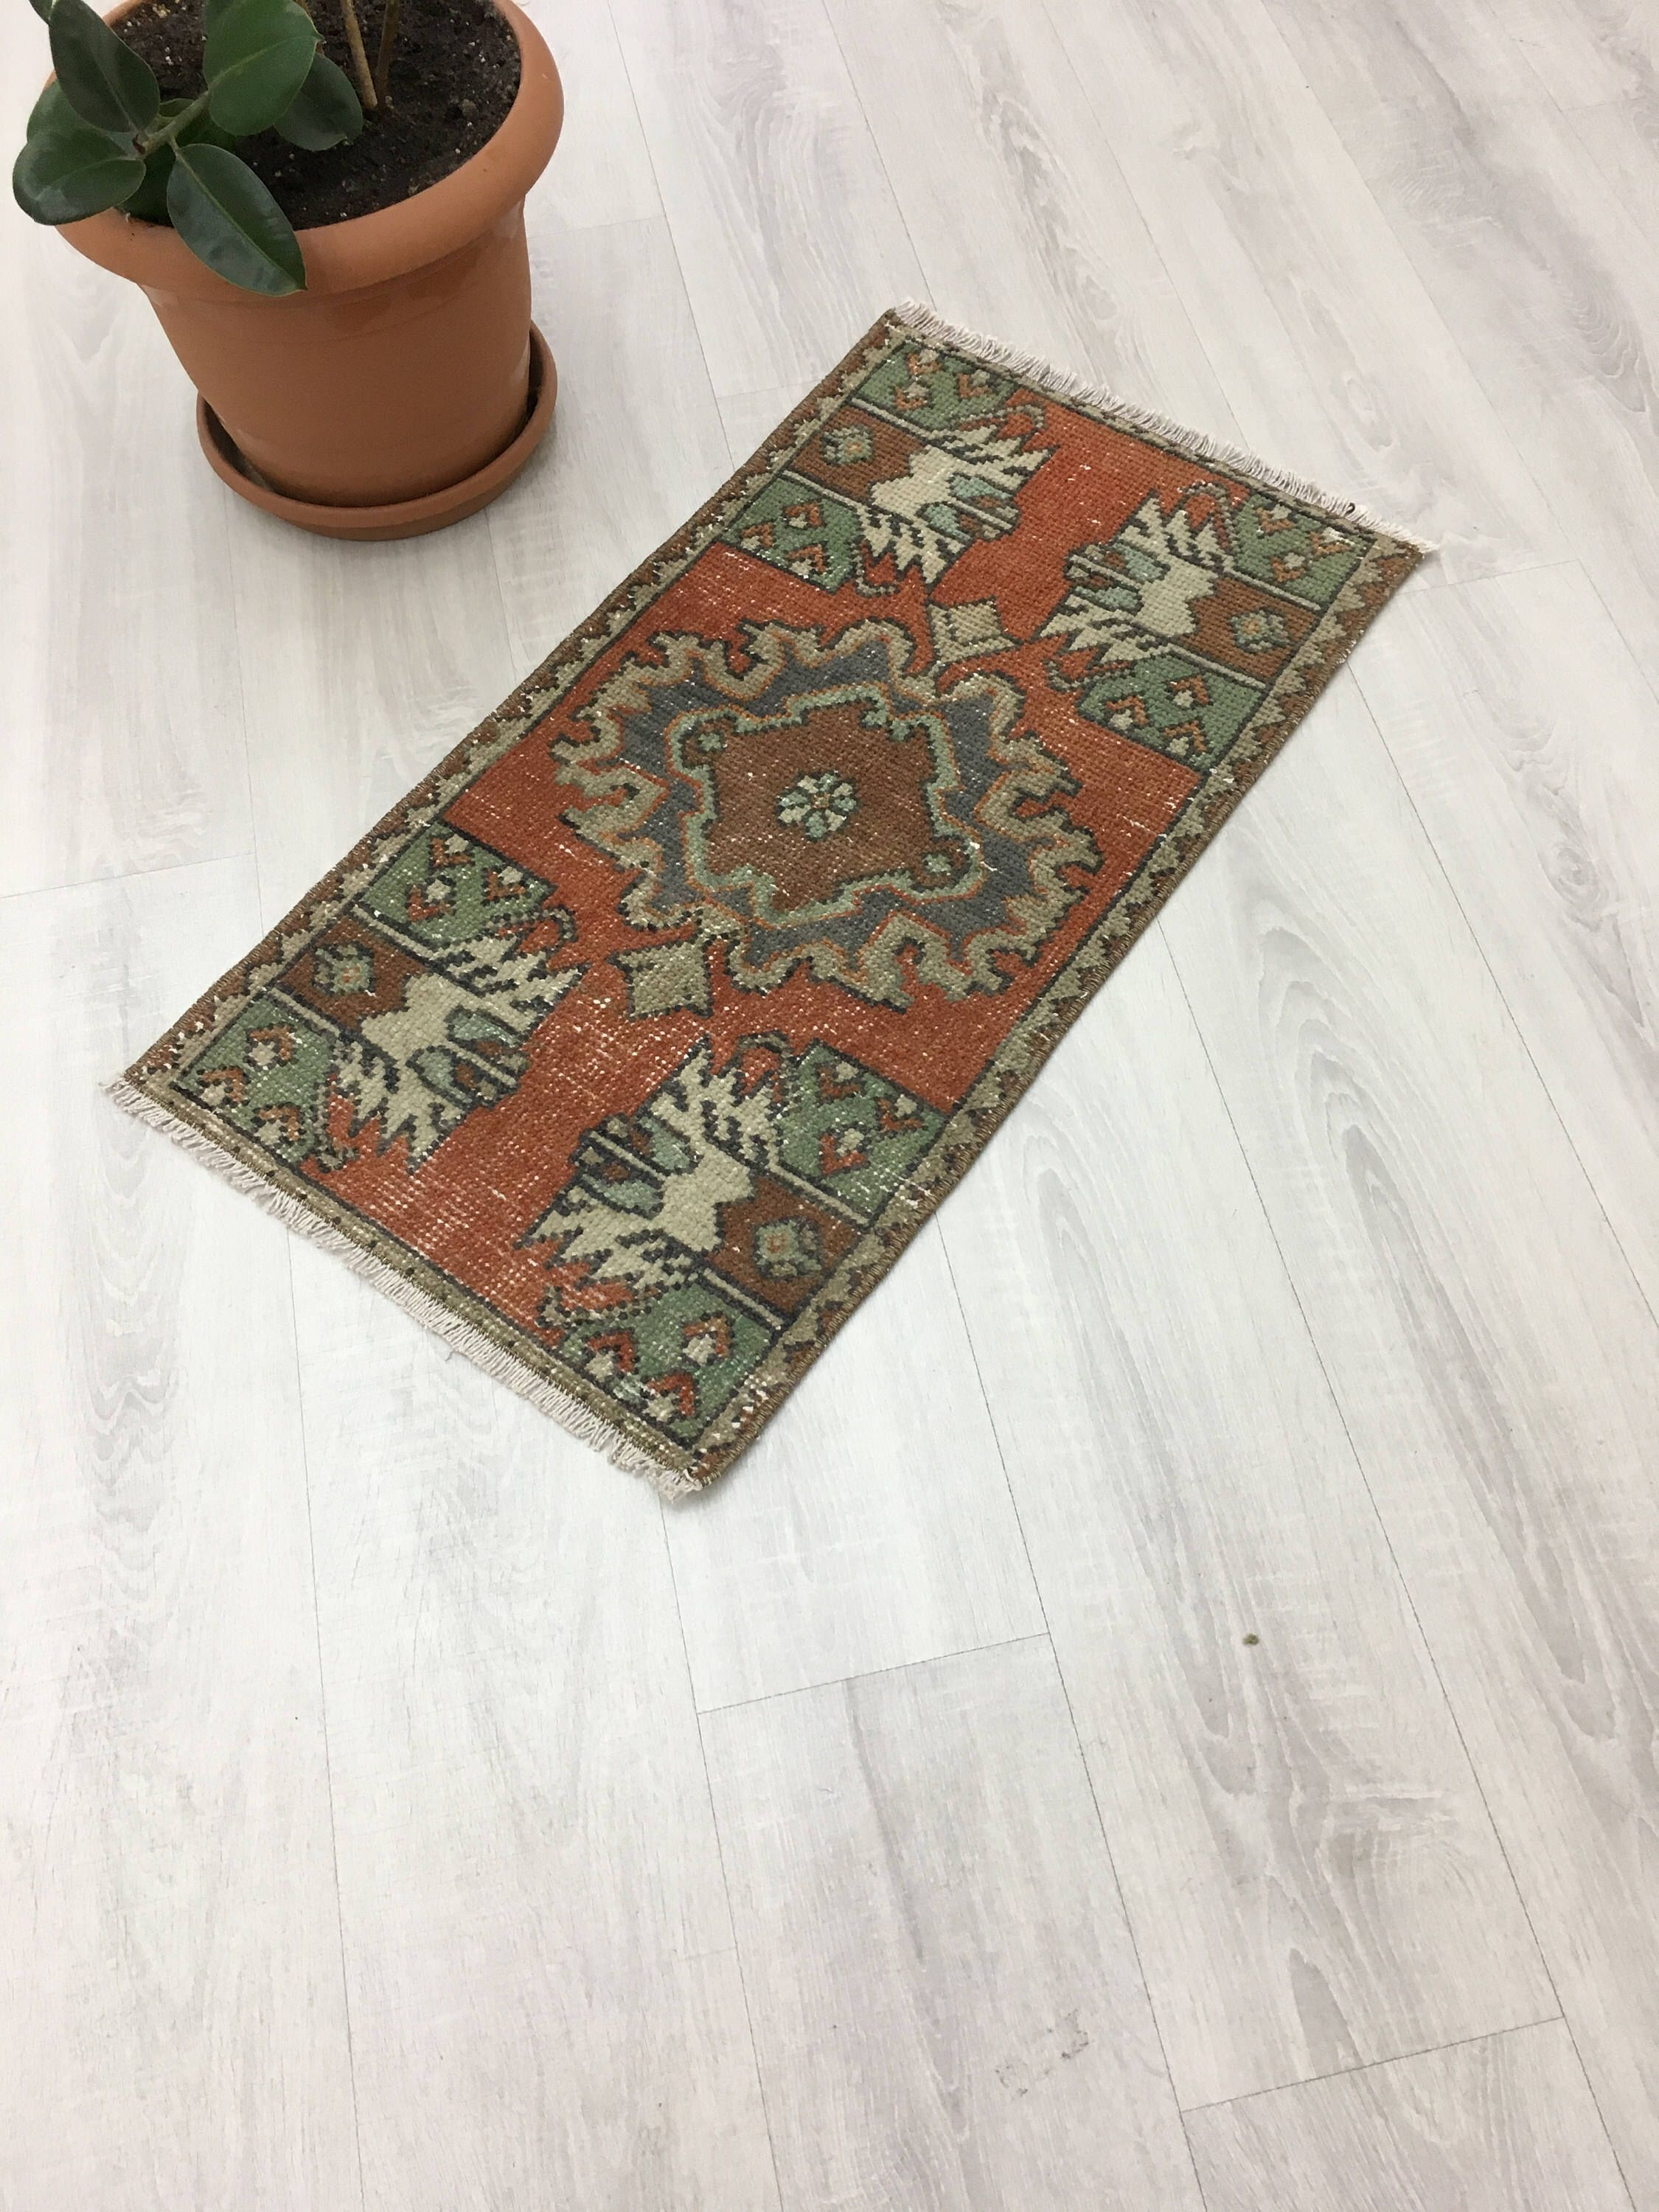 Elegant Rustic Country Style Vintage Small Turkish Rug,Unique Nomadic Woven Low  Pile Muted Yastik Rug